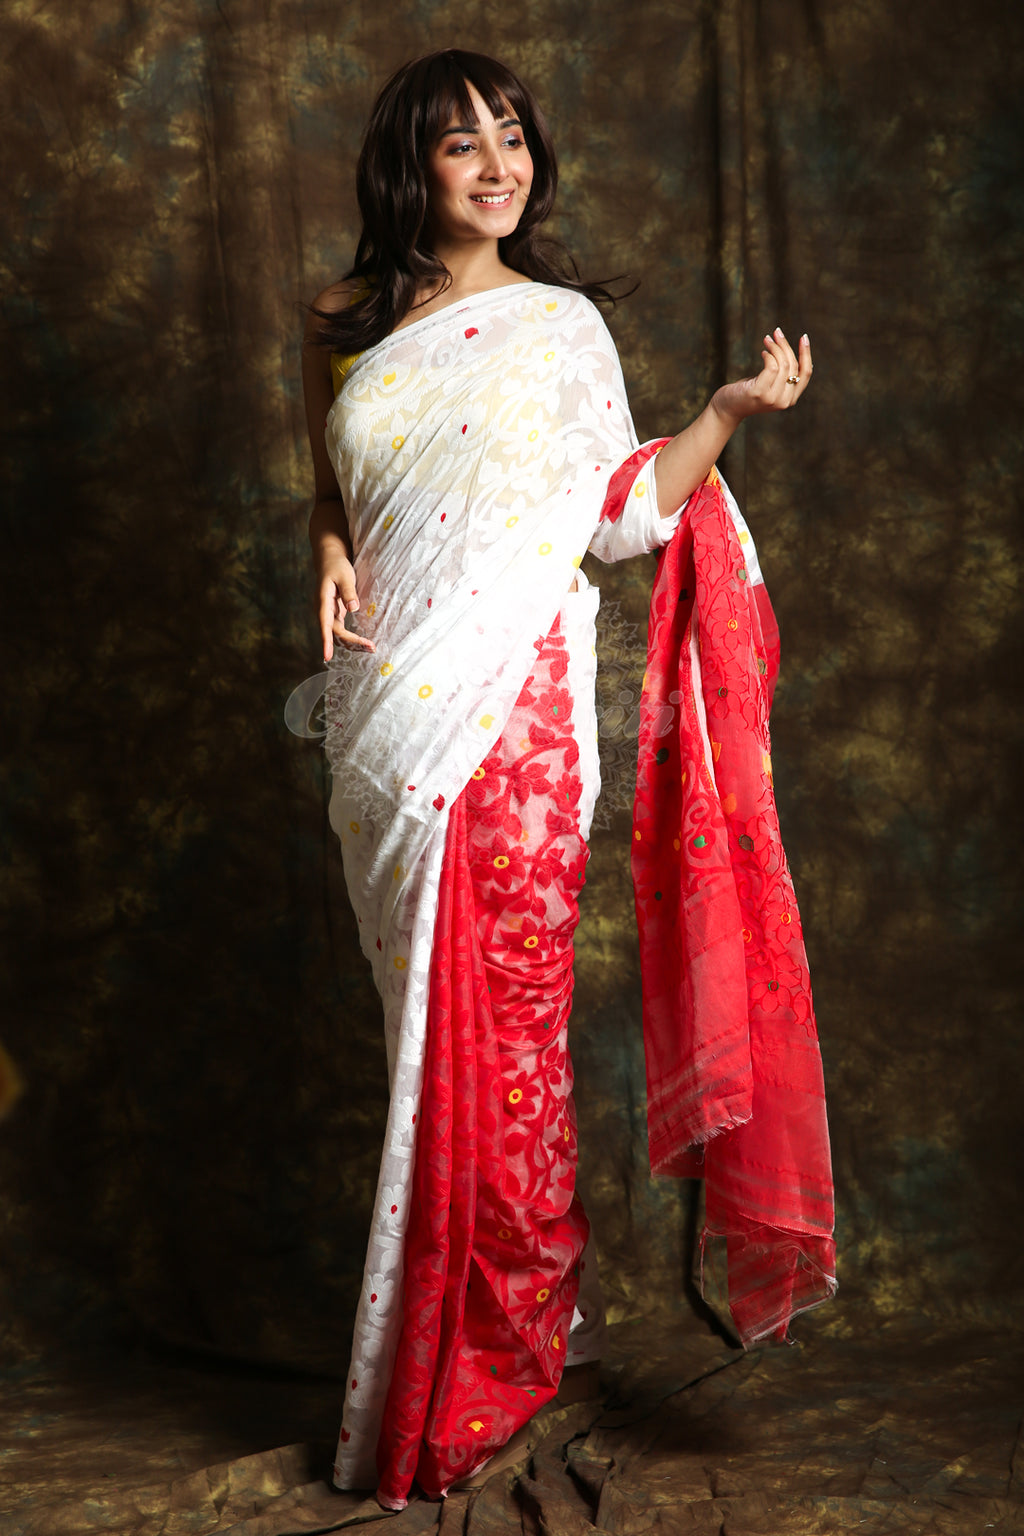 This White And Red Jamdani Saree By Charukriti Is Crafted In Cotton And Features Thread Weaving Details All Over - Charukriti.co.in